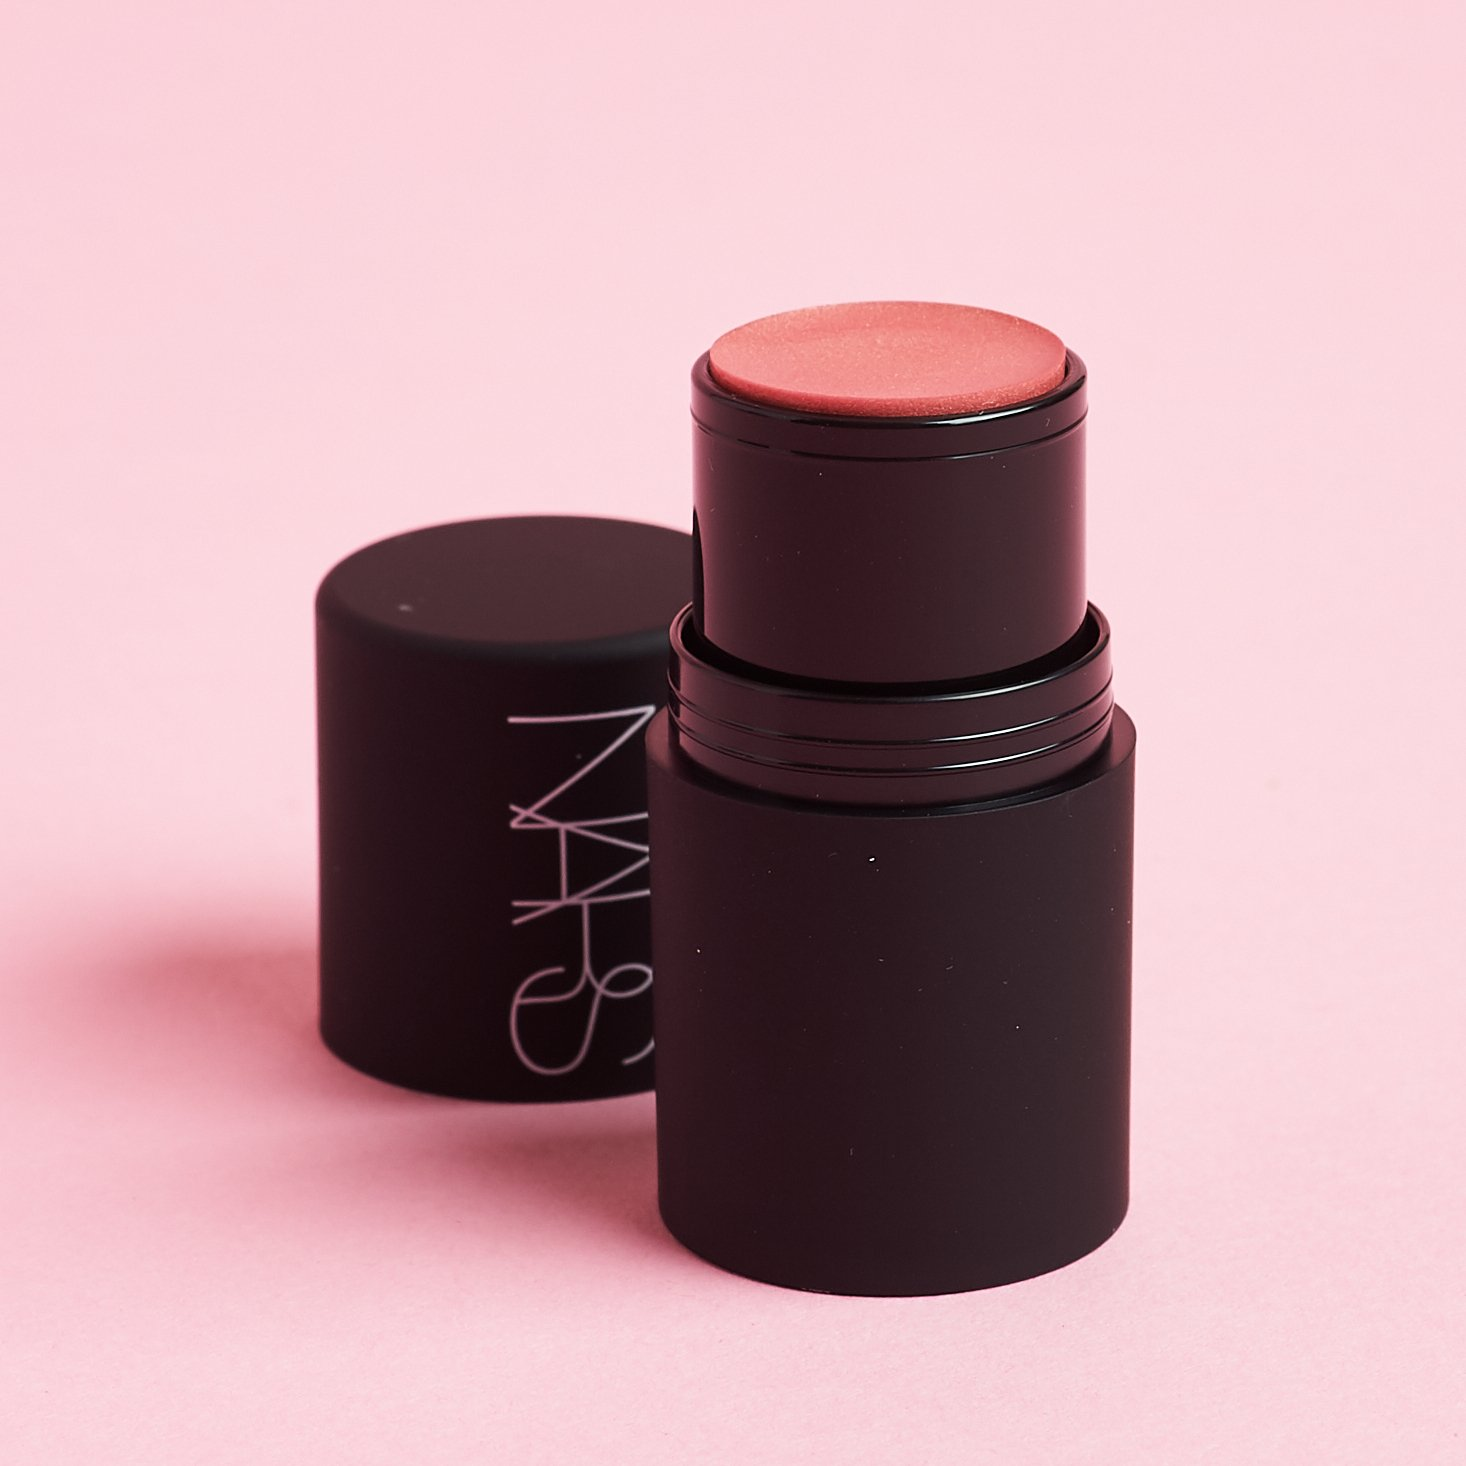 Nars The Multiple Stick in Orgasm with cap off